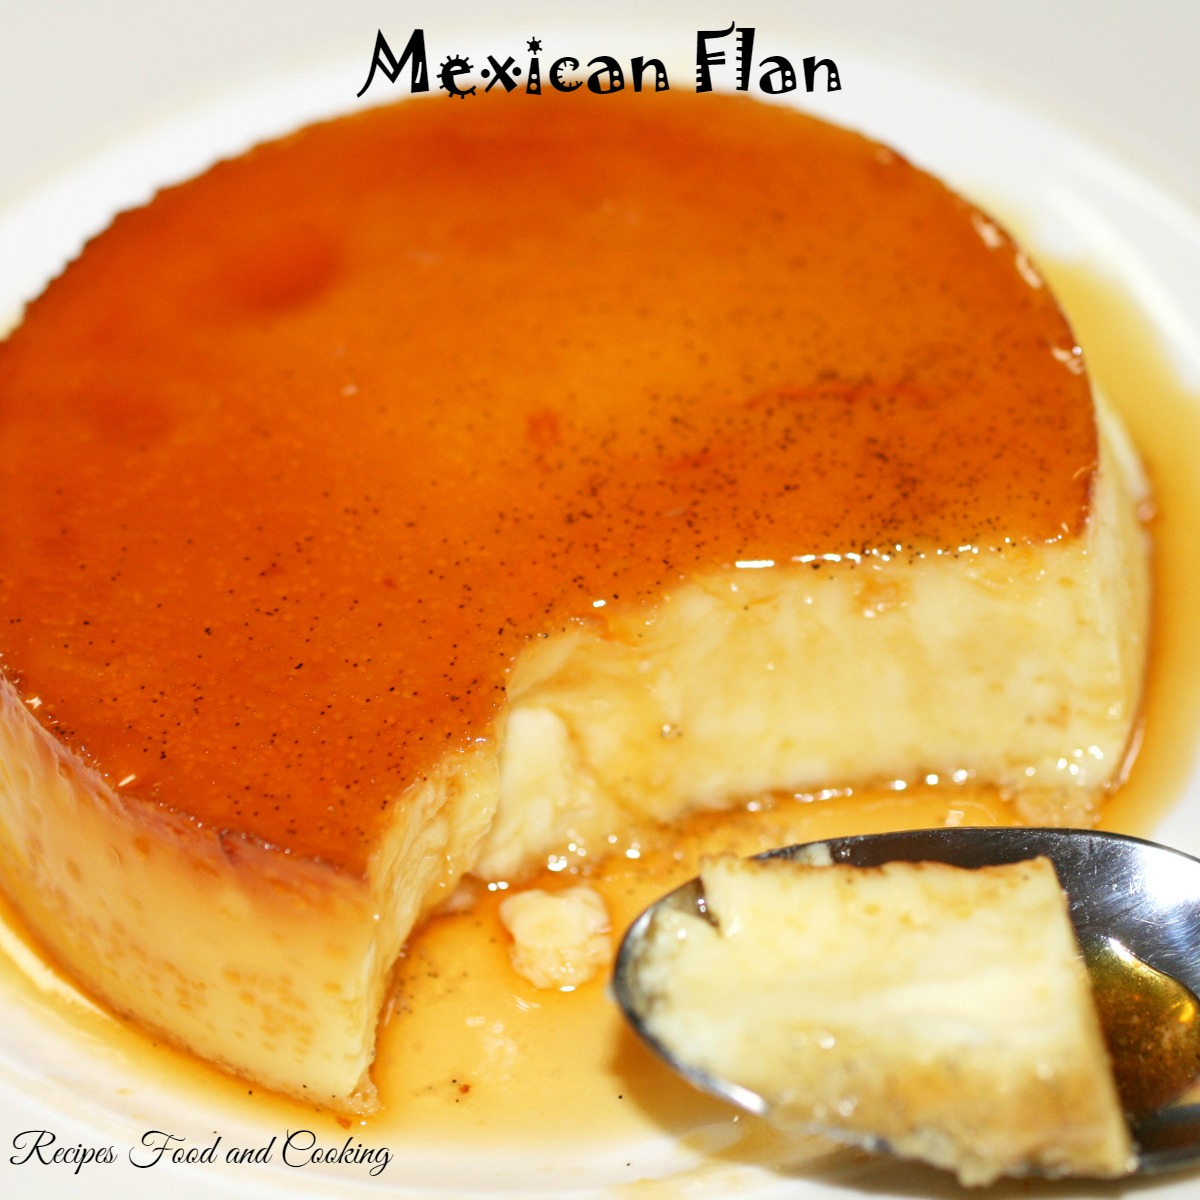 Mexican Flan - Recipes Food and Cooking